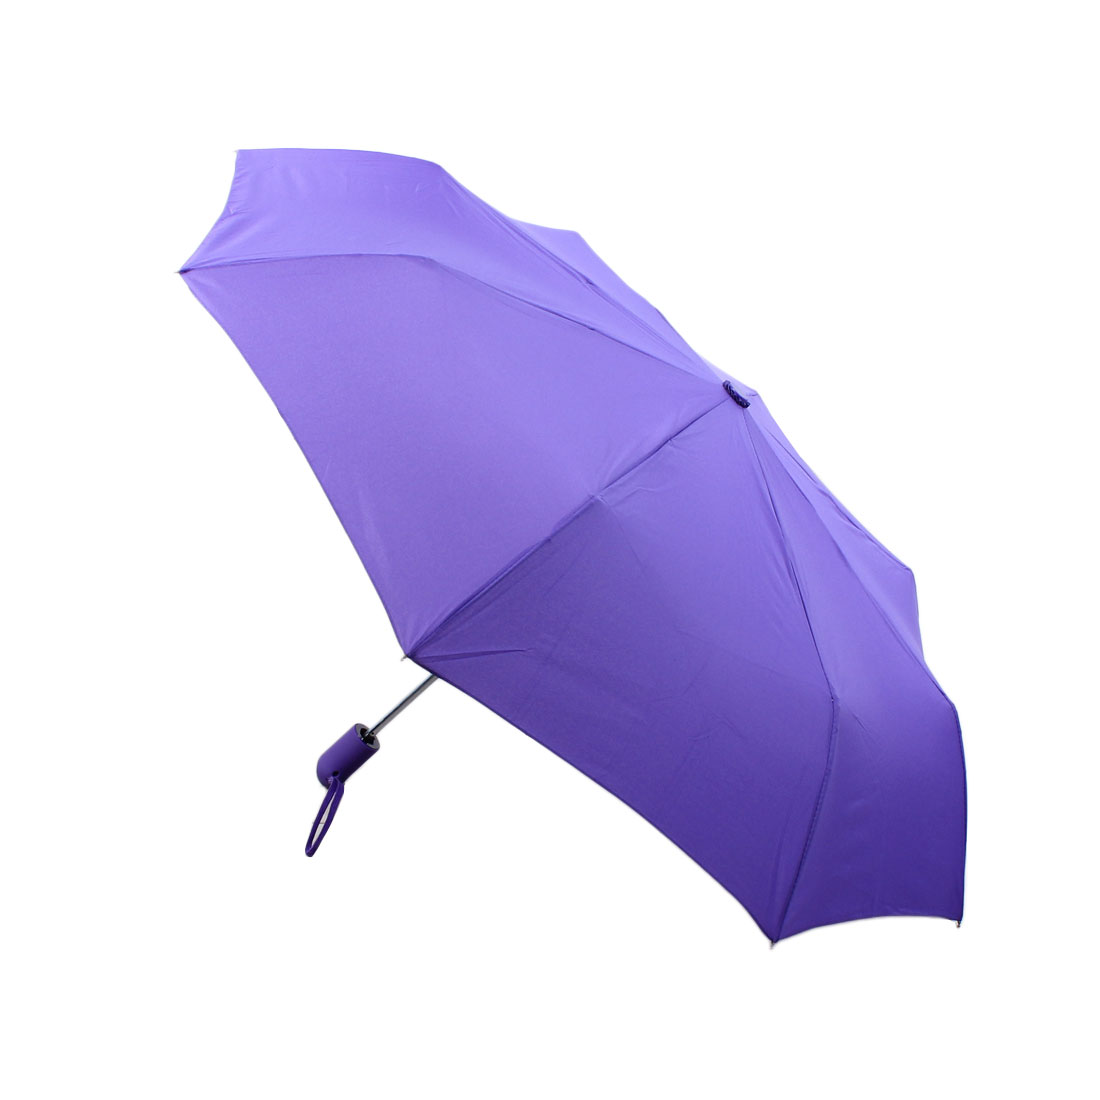 Travel Automatic Open Close Folding Compact Umbrella 97cm Dia